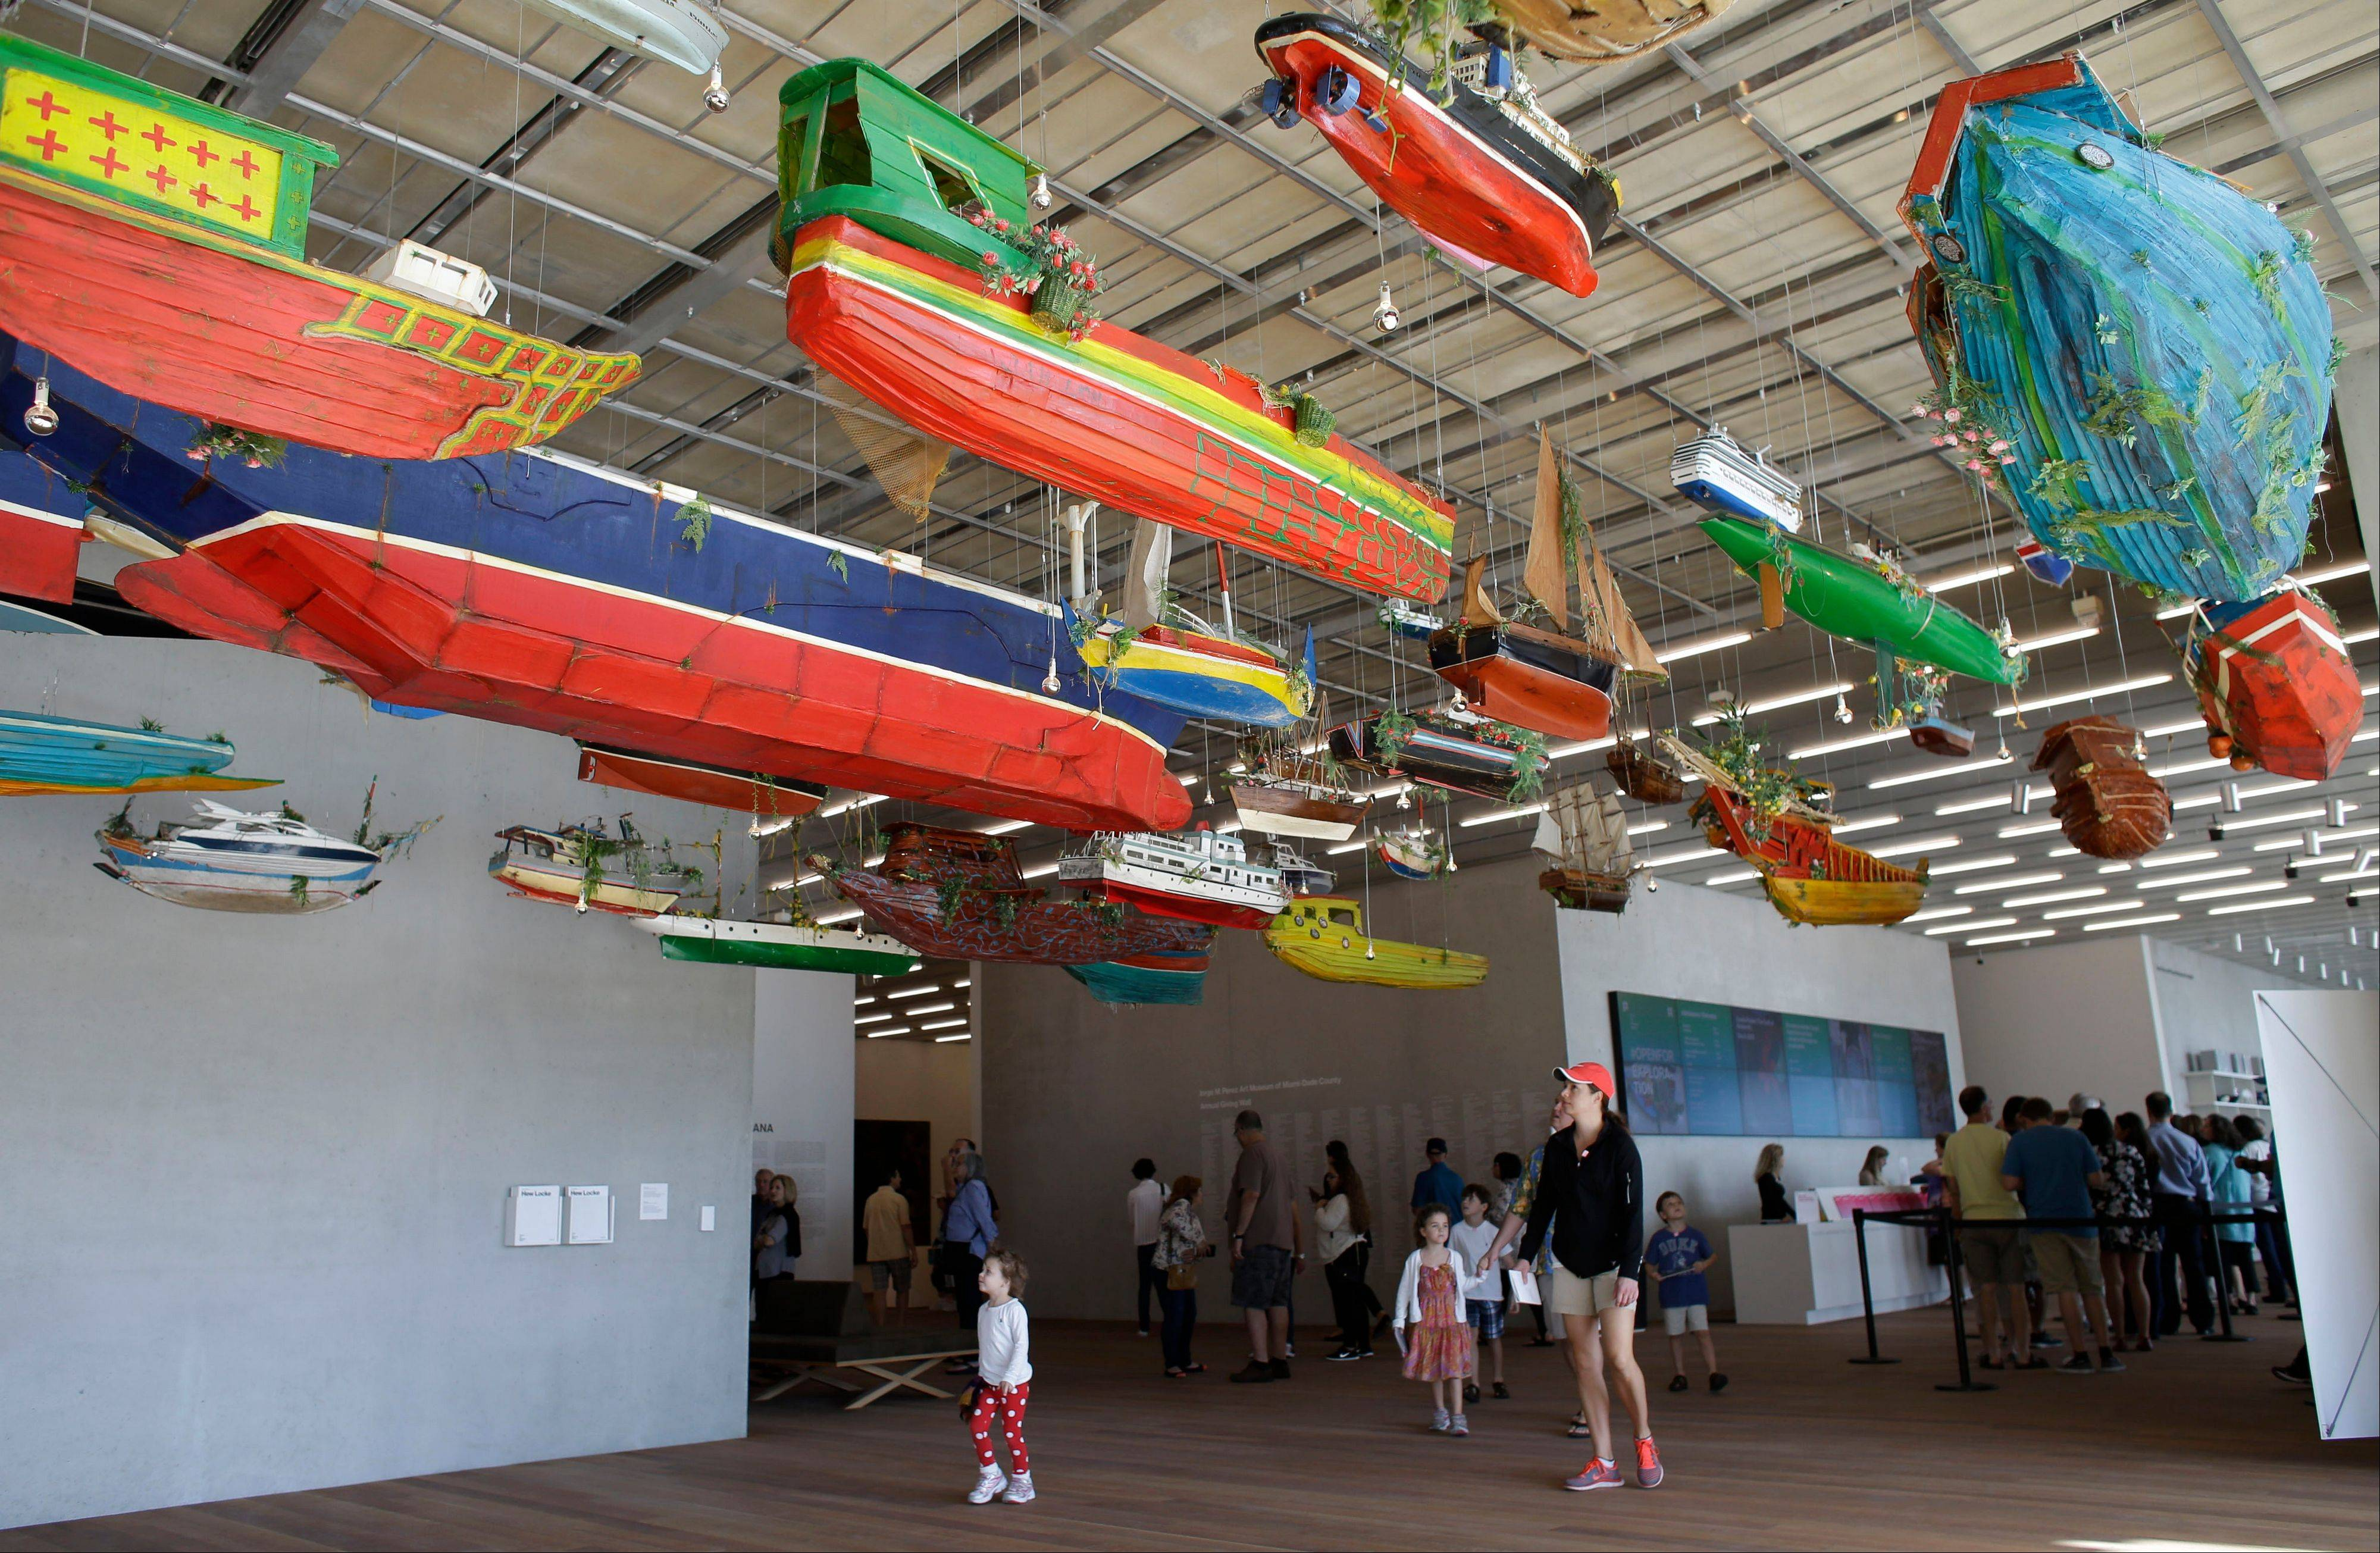 """For Those In Peril on the Sea"" by the Guyana-raised artist Hew Locke appears at the Perez Art Museum Miami, in Miami. The colorful display is both a playful nod to South Florida's maritime culture and a somber reference to those perilous journeys so many make to get there."